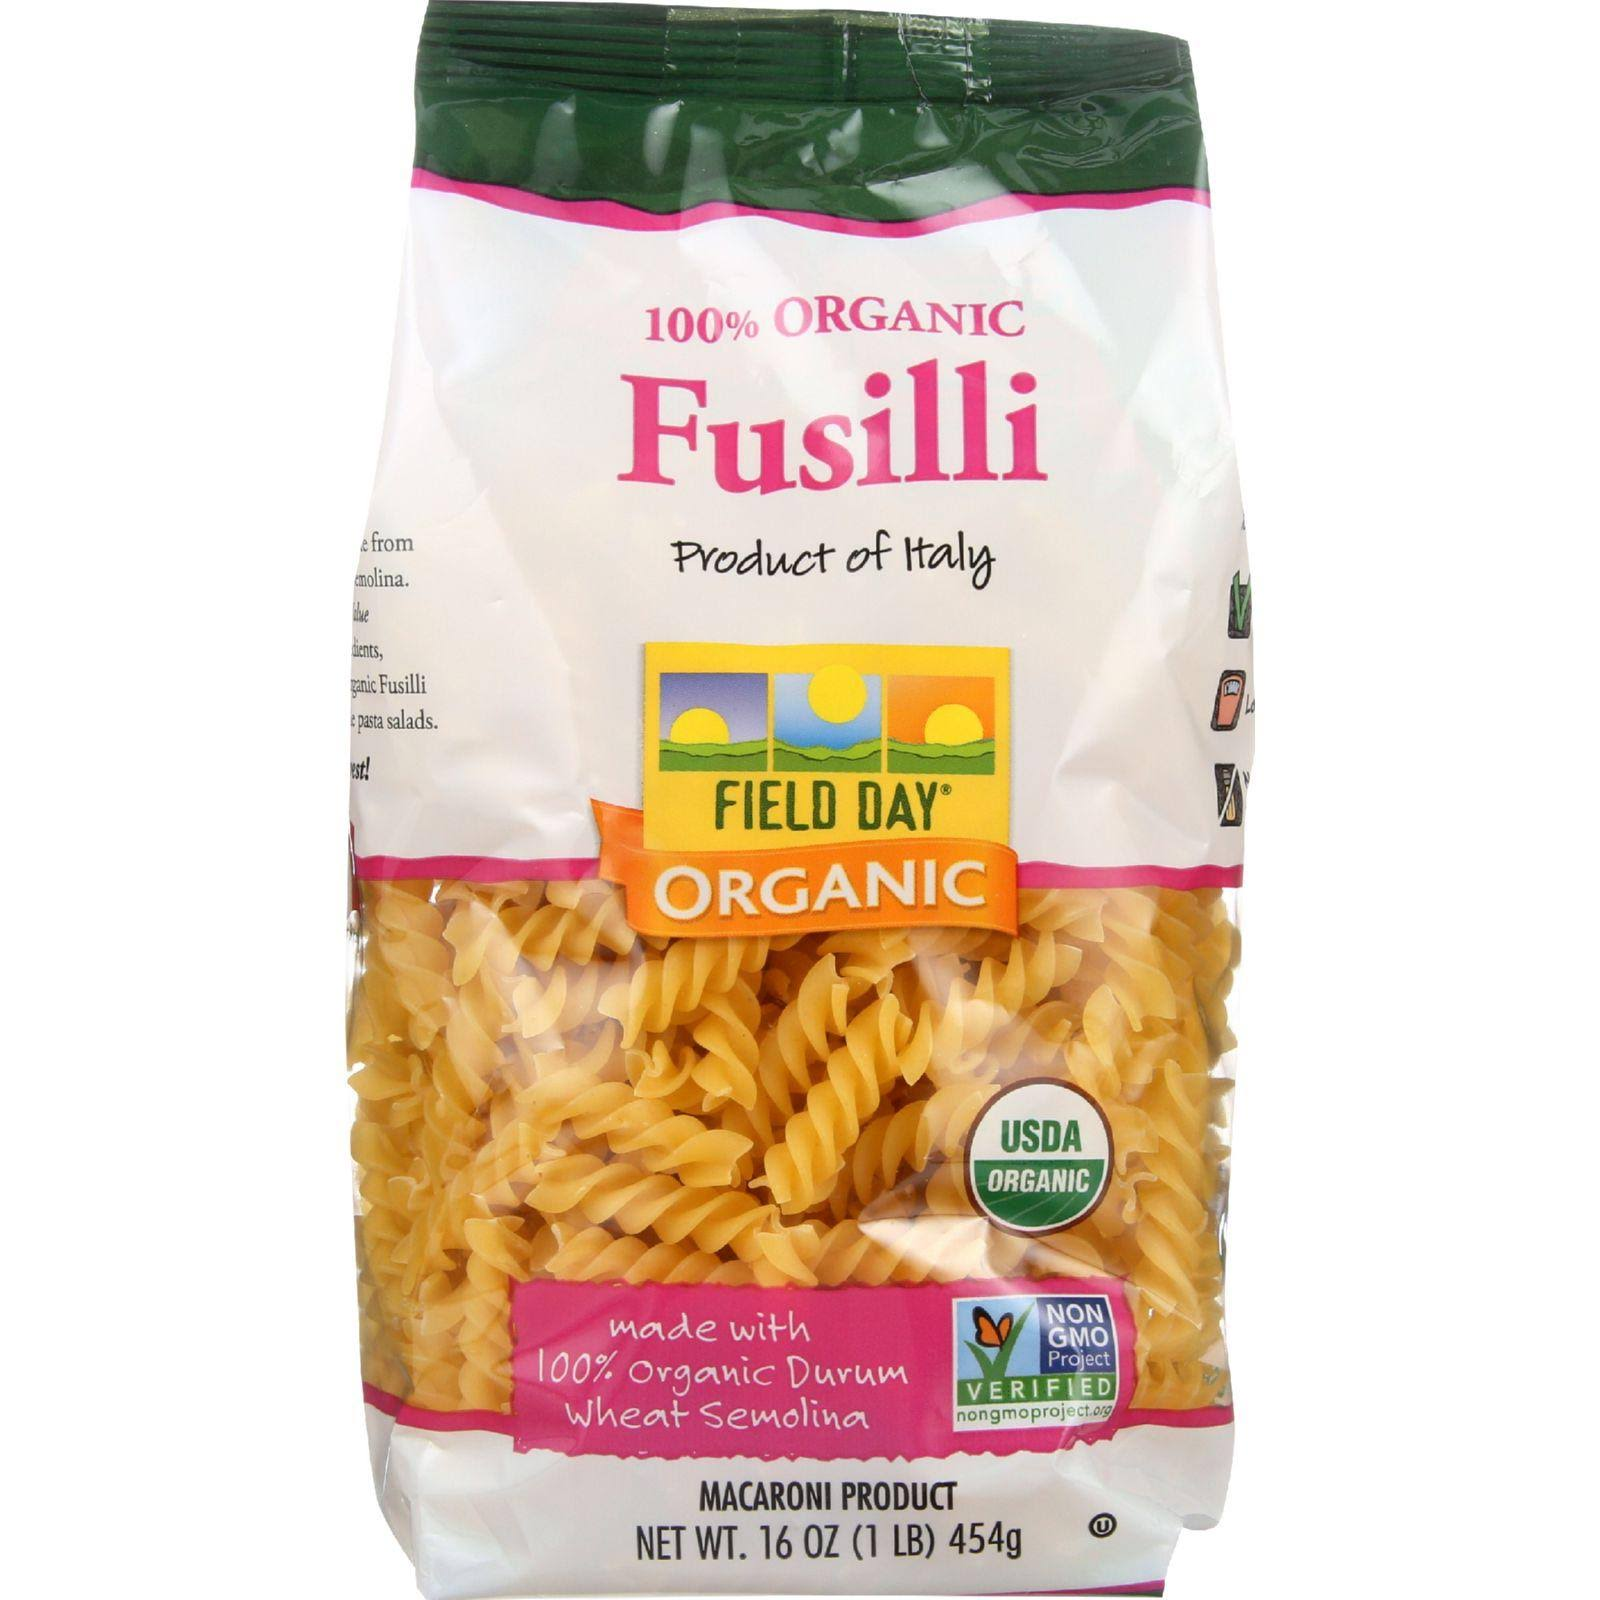 Field Day Organic Fusilli - 454g